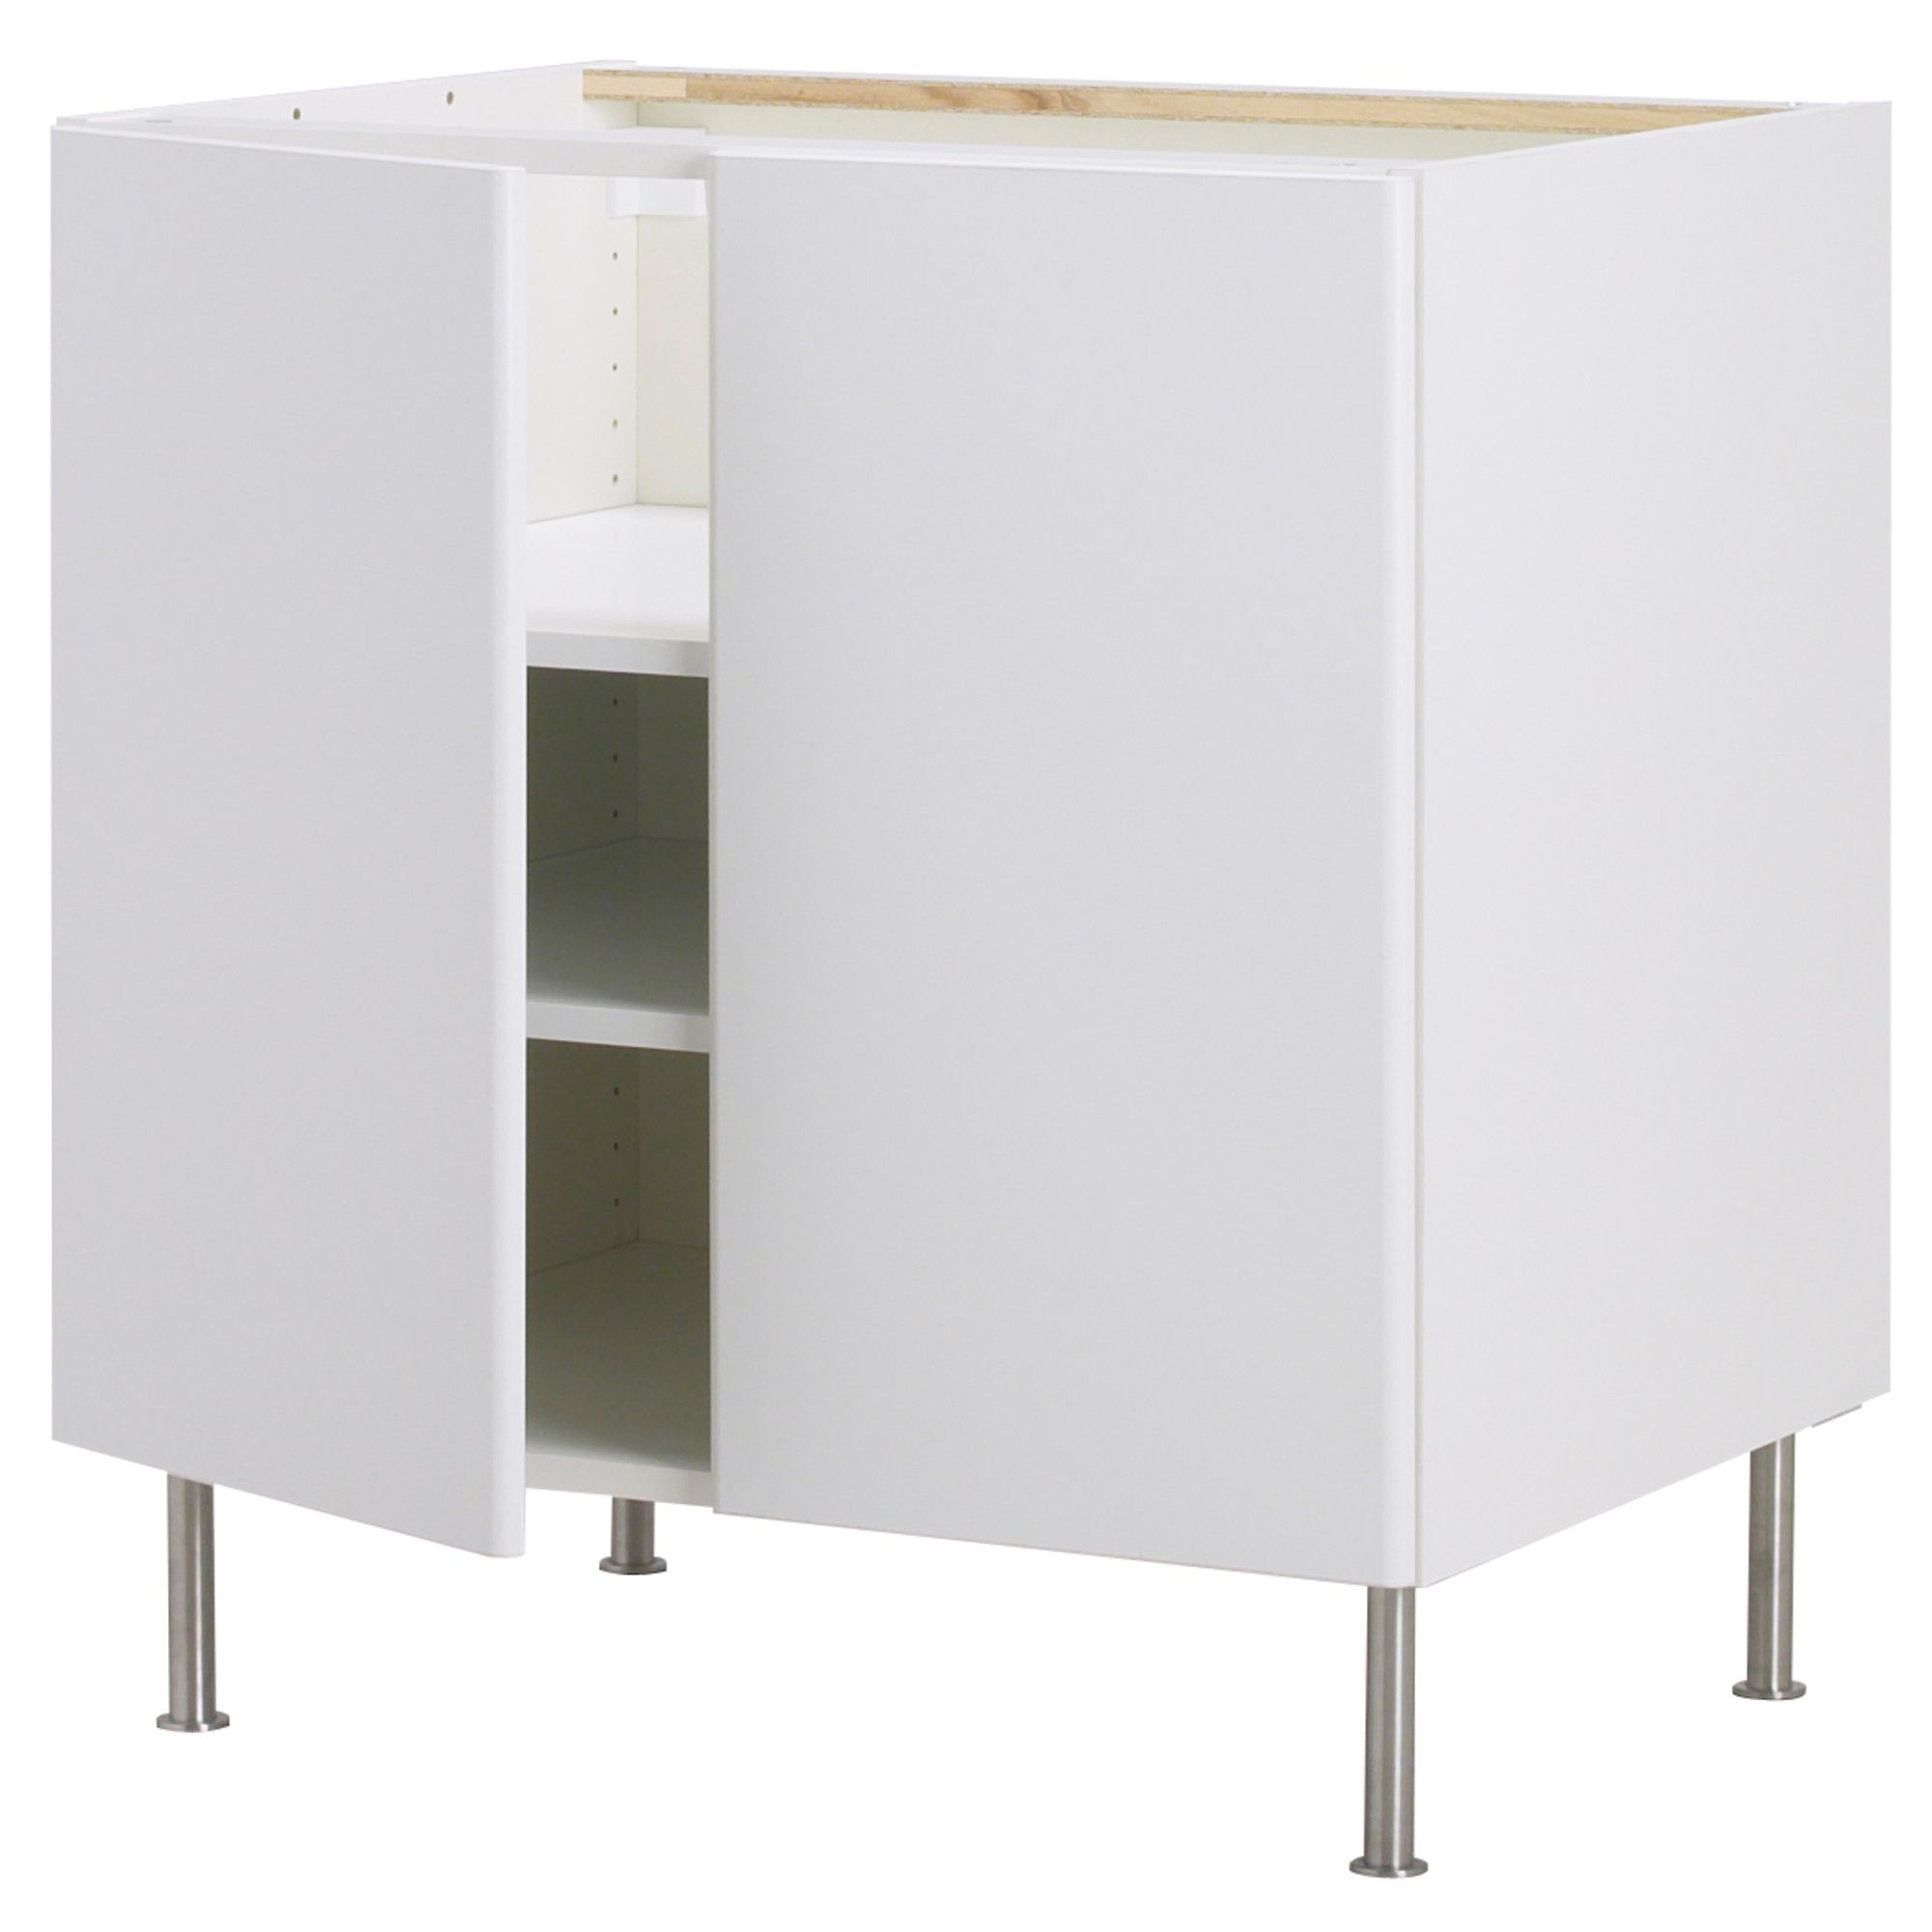 Base Cabinets For Desk Hasvg Base Cabinets The Ojays And Desks